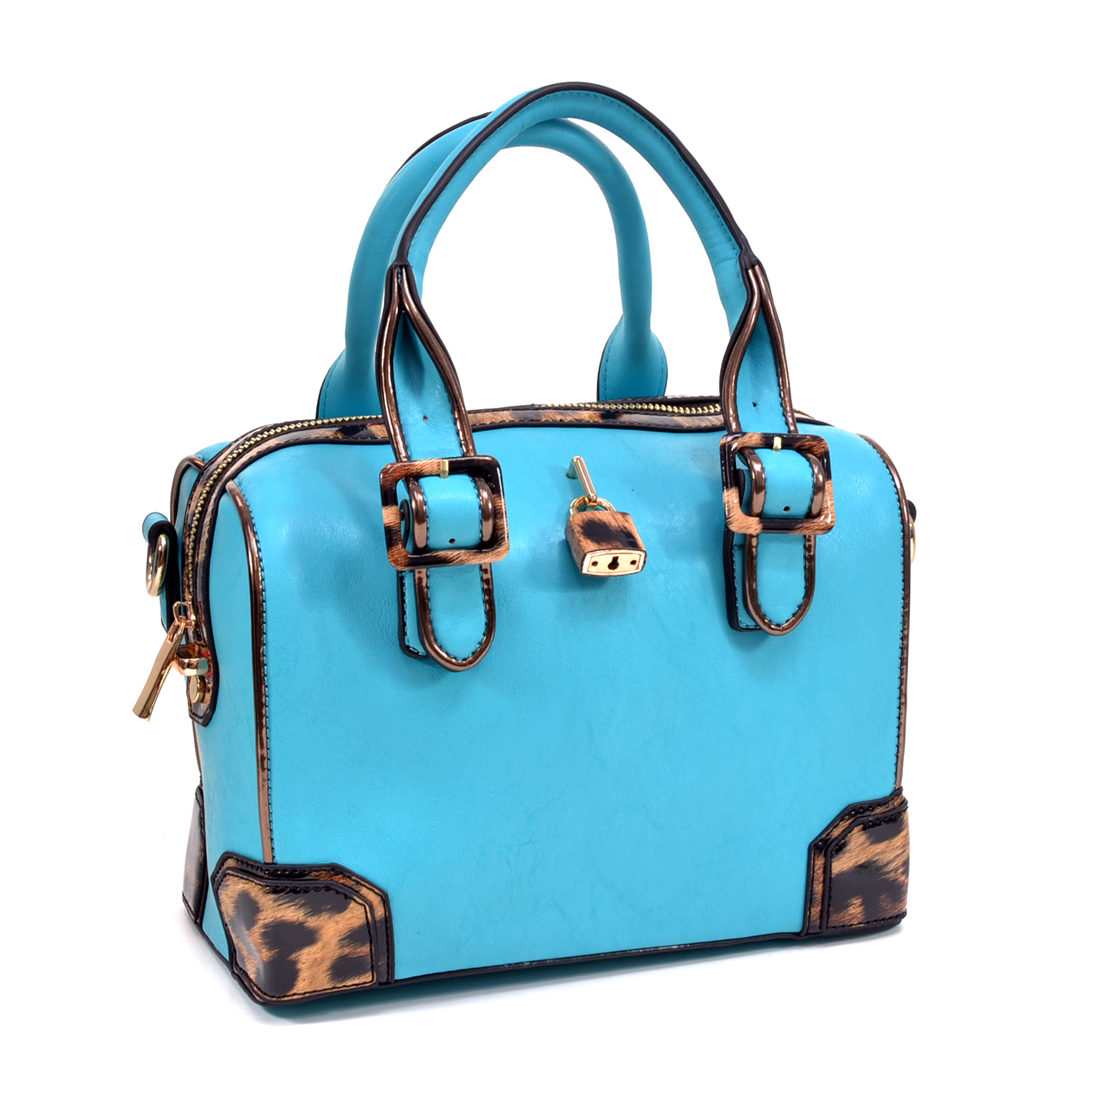 Leopard Accented Satchel Bag with Removable Shoulder Strap